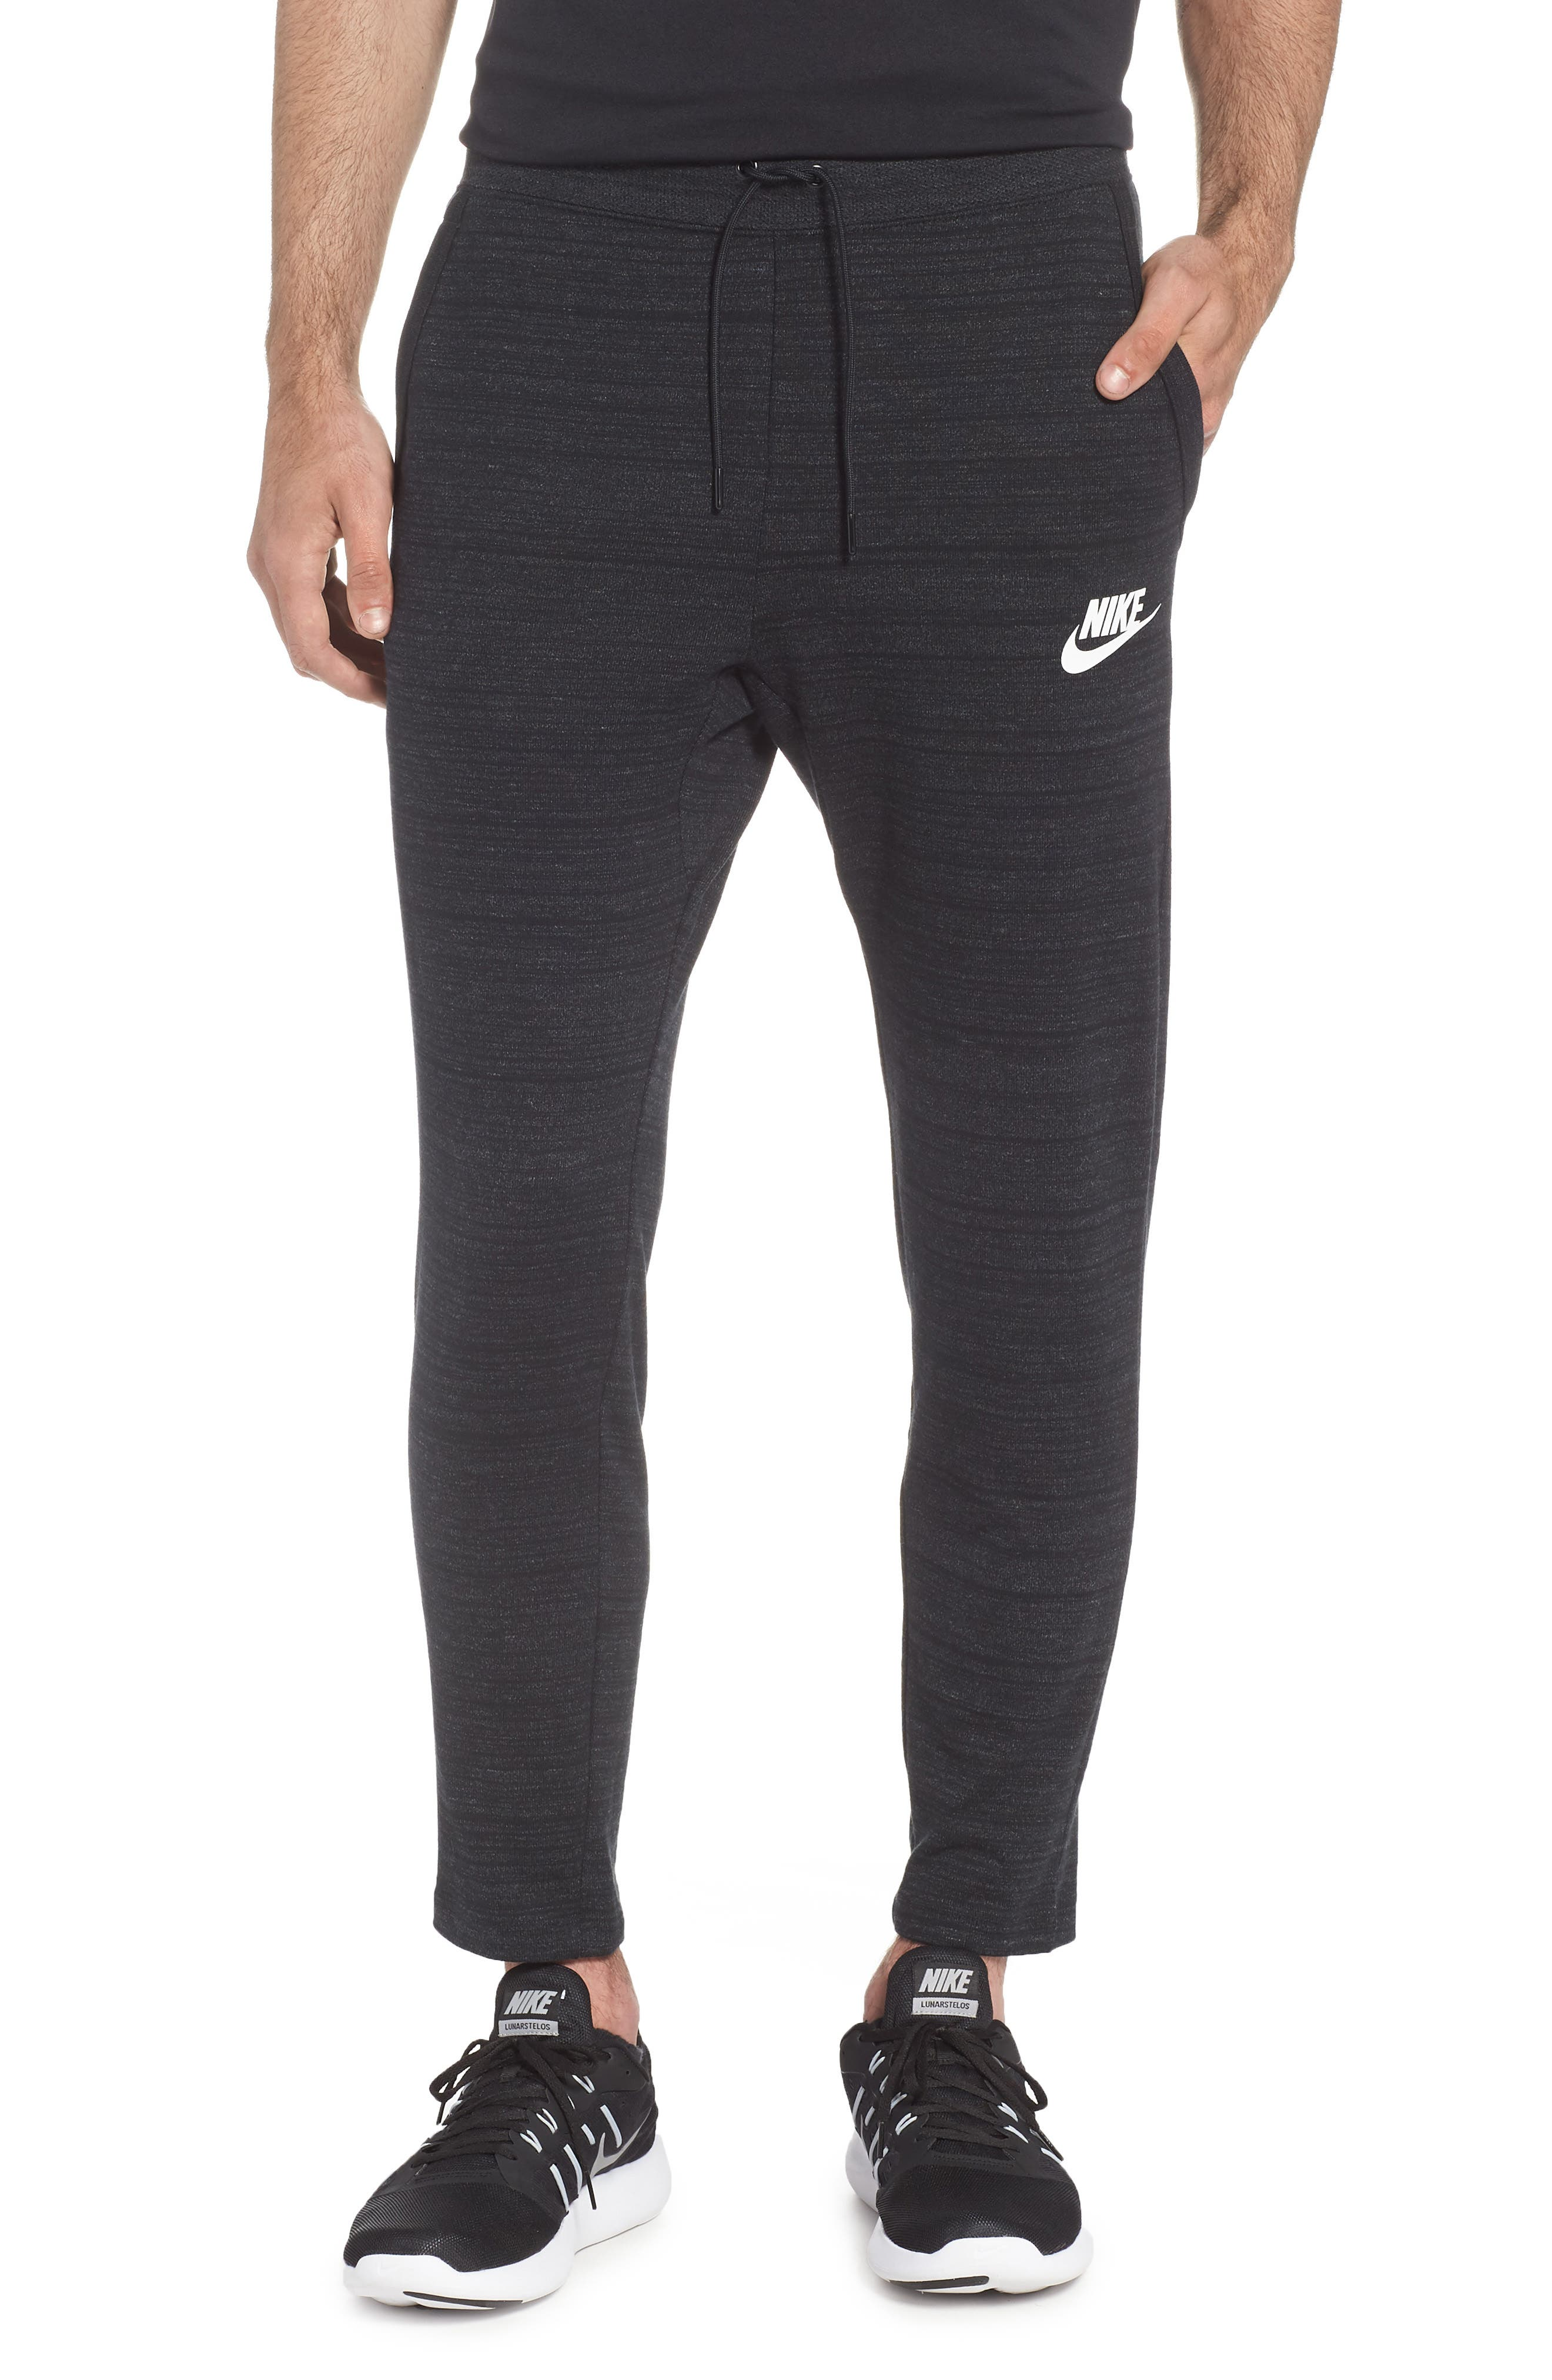 NSW Advance 15 Jogger Pants,                         Main,                         color, BLACK/ HEATHER/ WHITE